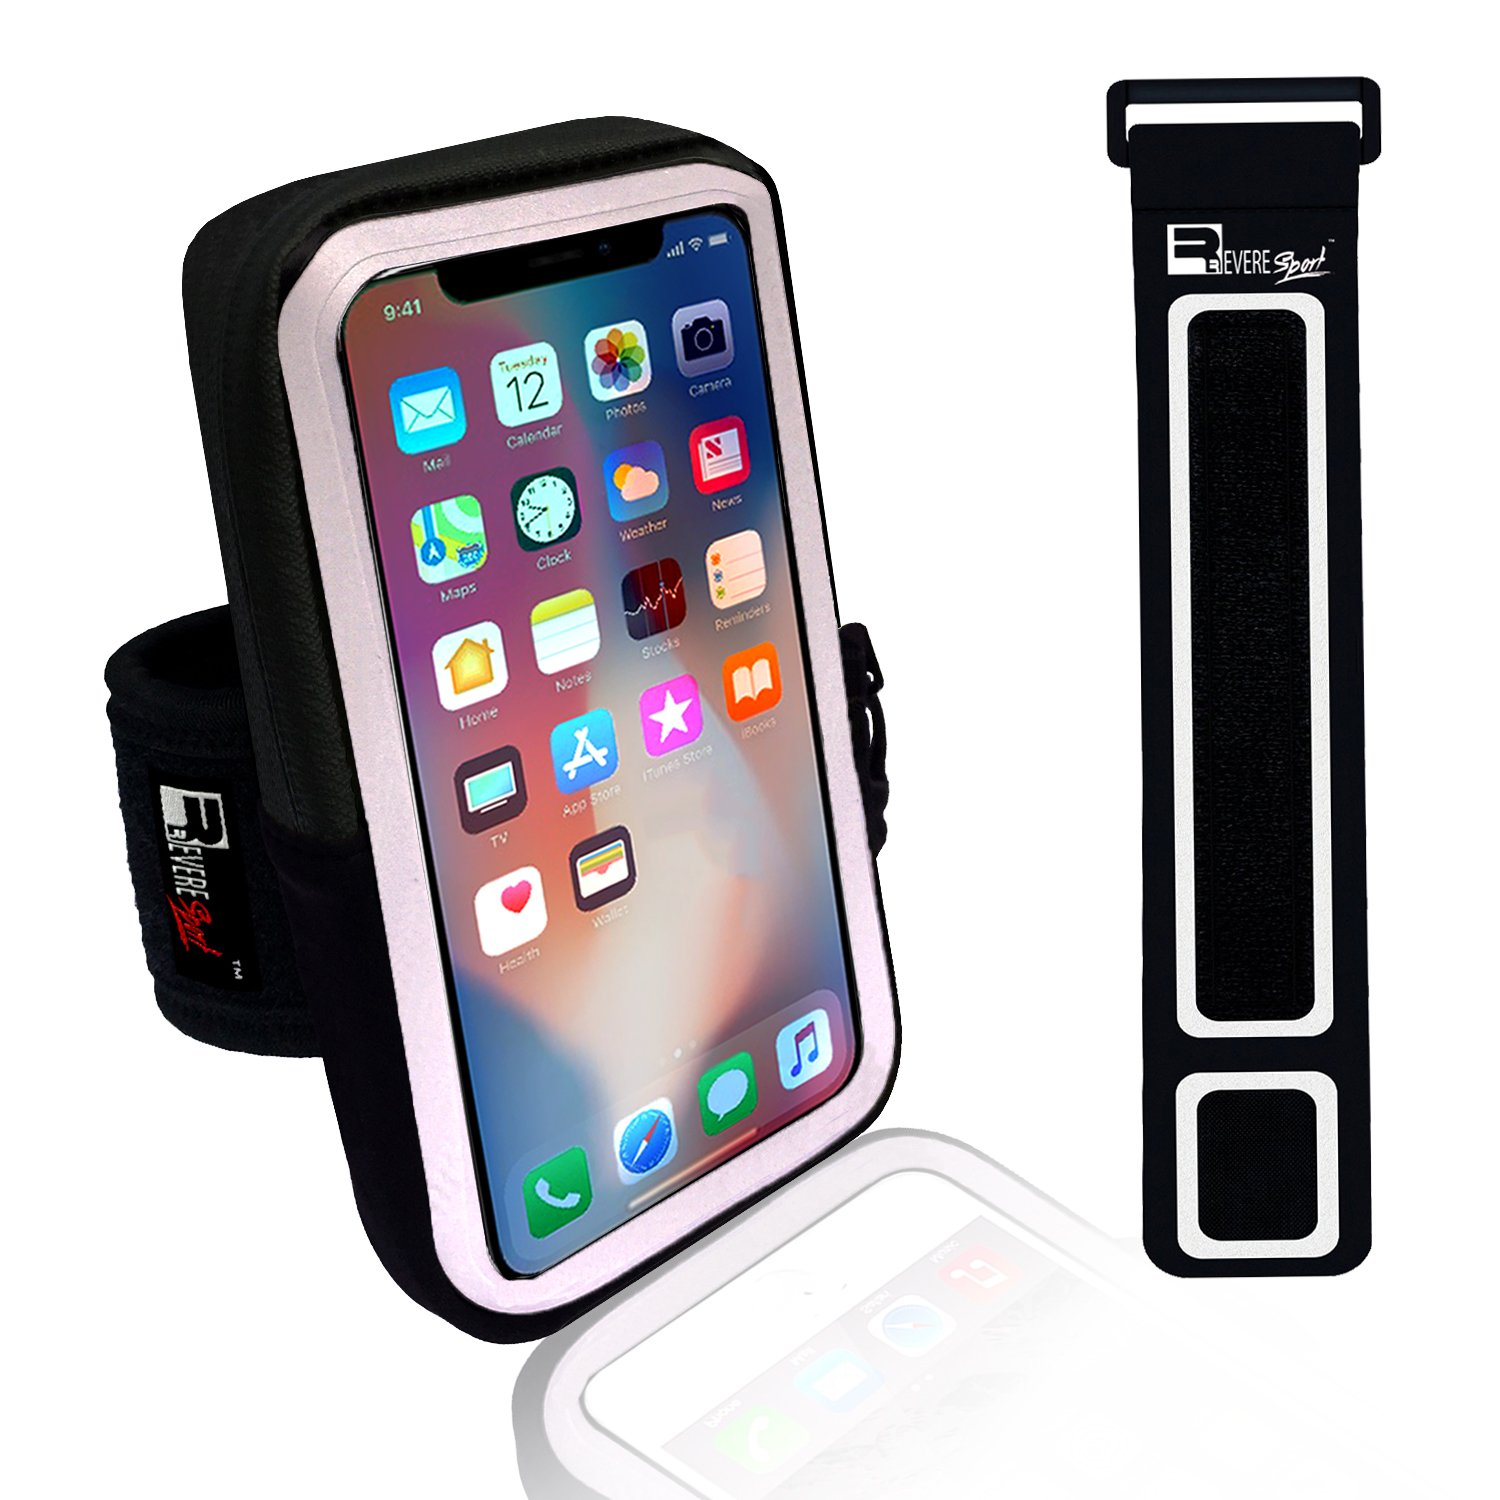 Provided Cycling Gym Shockproof Bag Running Exercise Armband Case Key Outdoor Sports Phone Holder Protect Jogging Lightweight Waterproof Modern Techniques Armbands